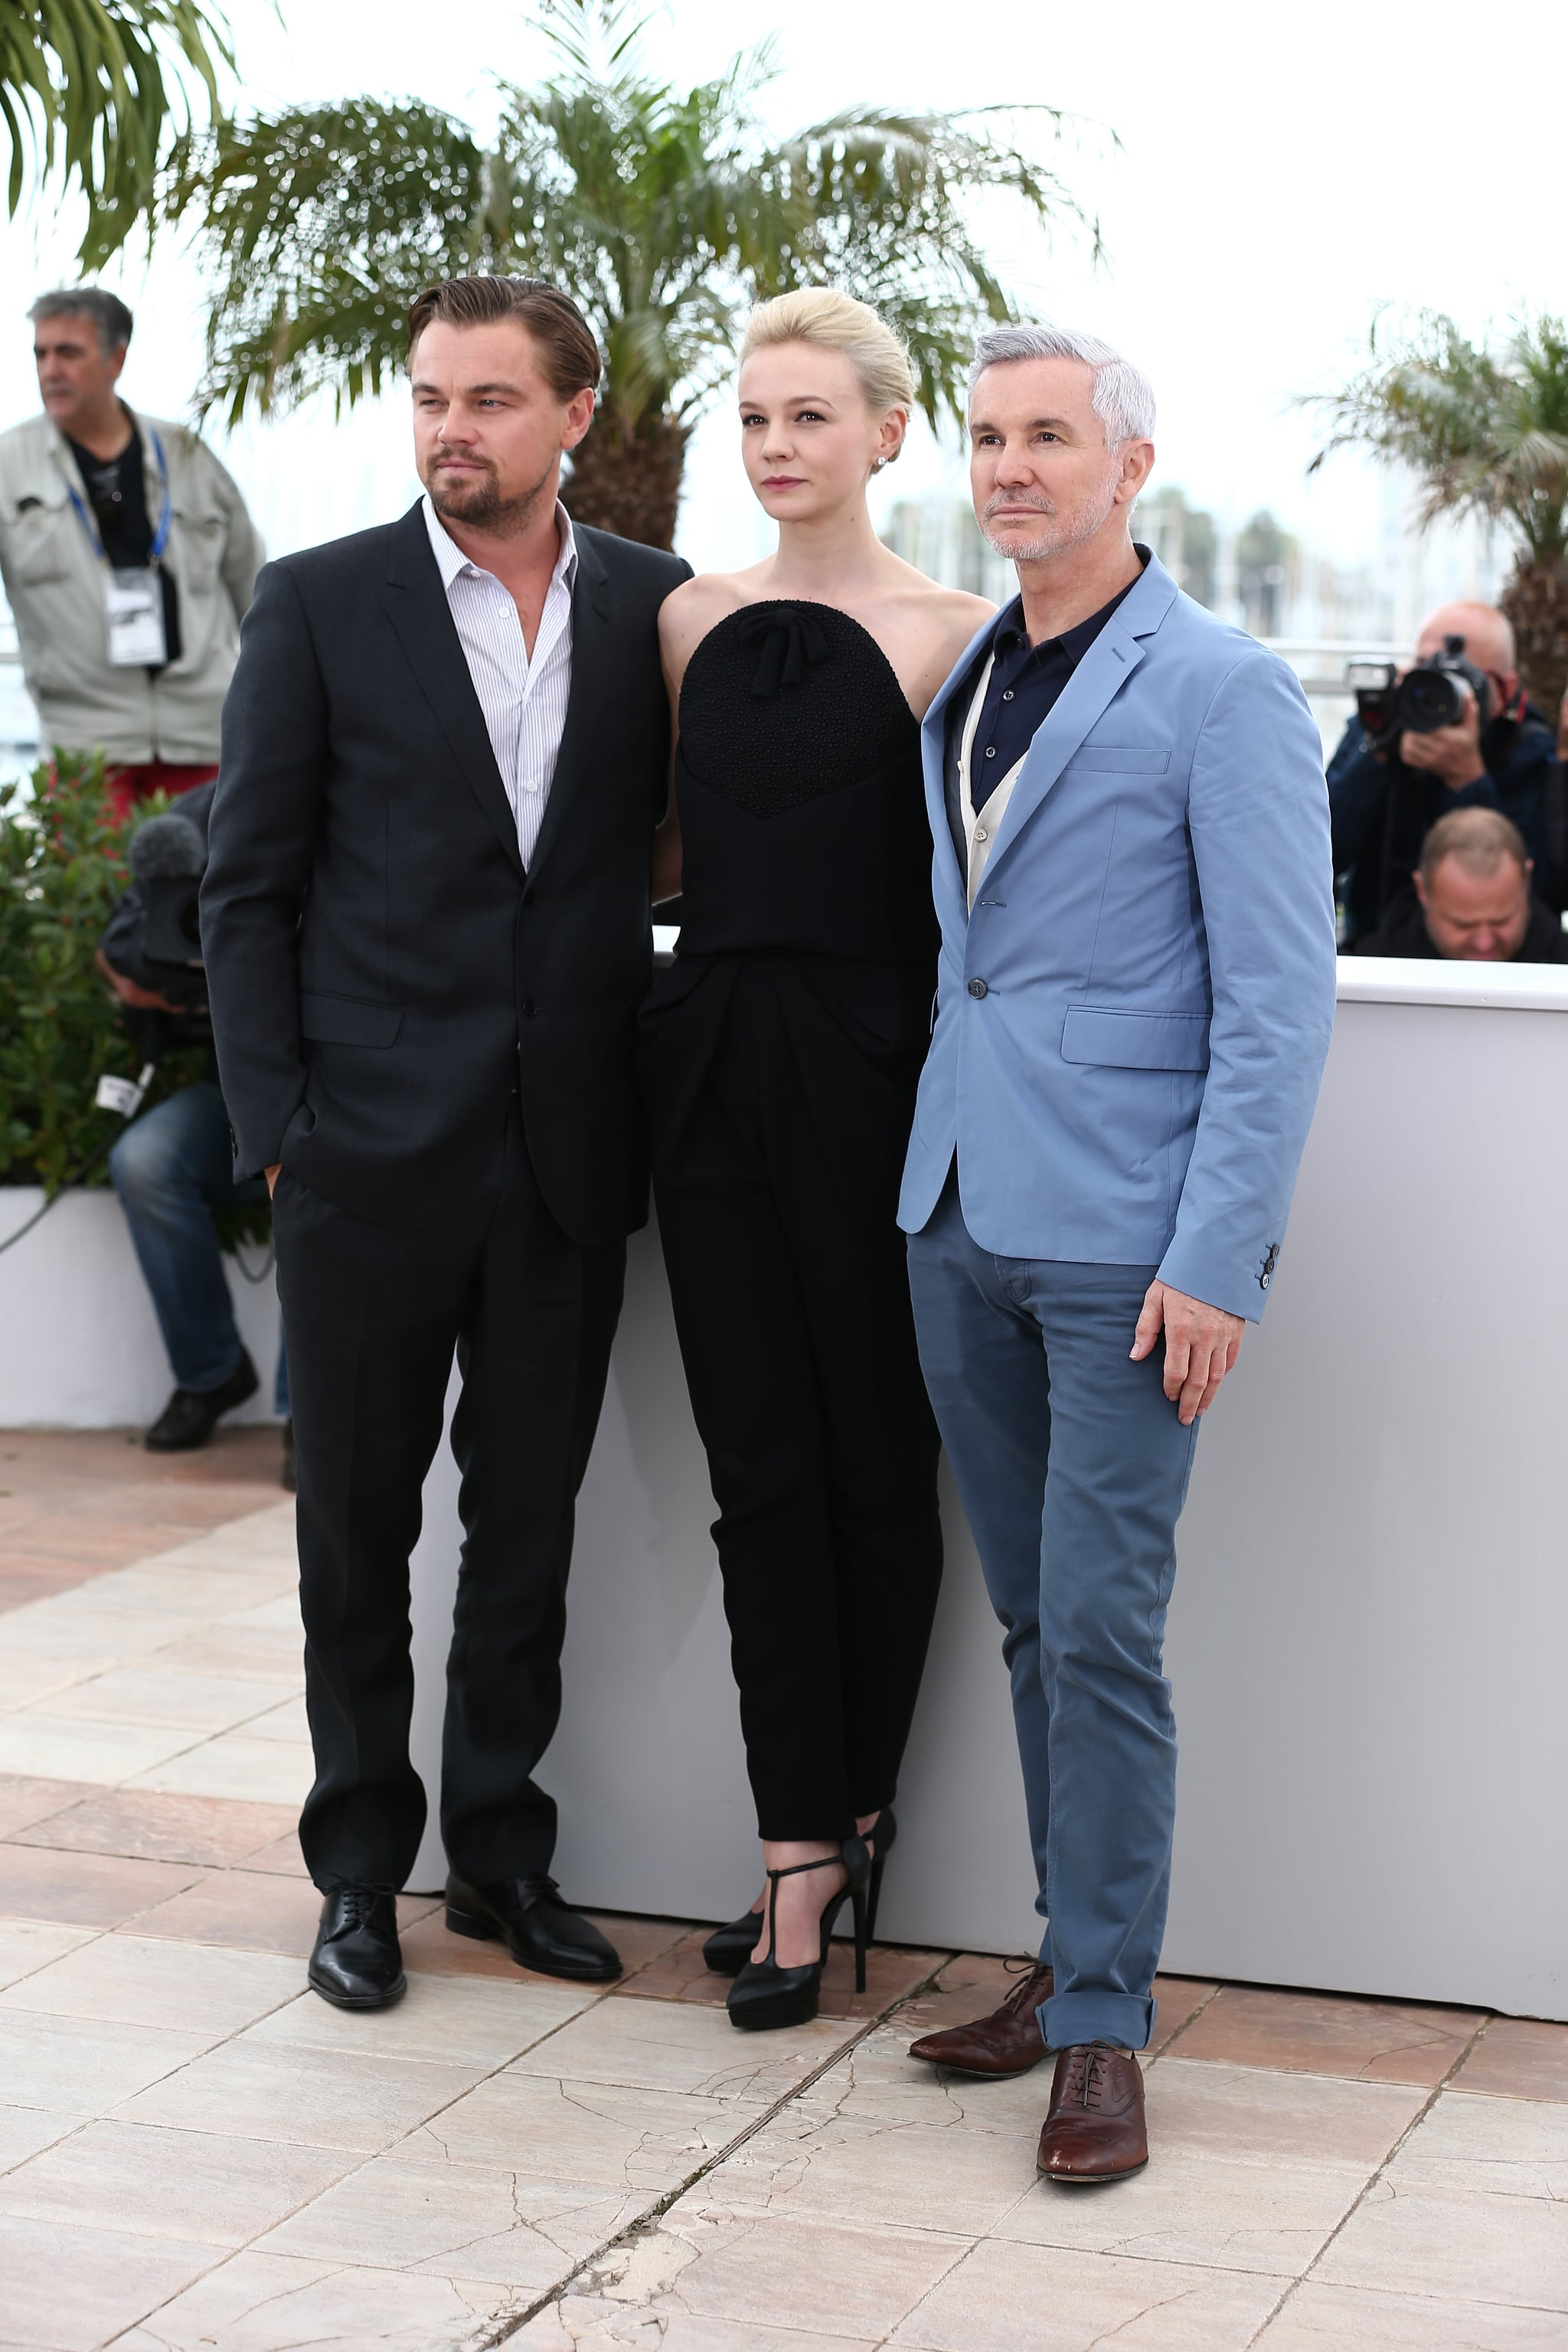 Leonardo DiCaprio and Carey Mulligan joined director Baz Luhrmann for a photocall for The Great Gatsby.